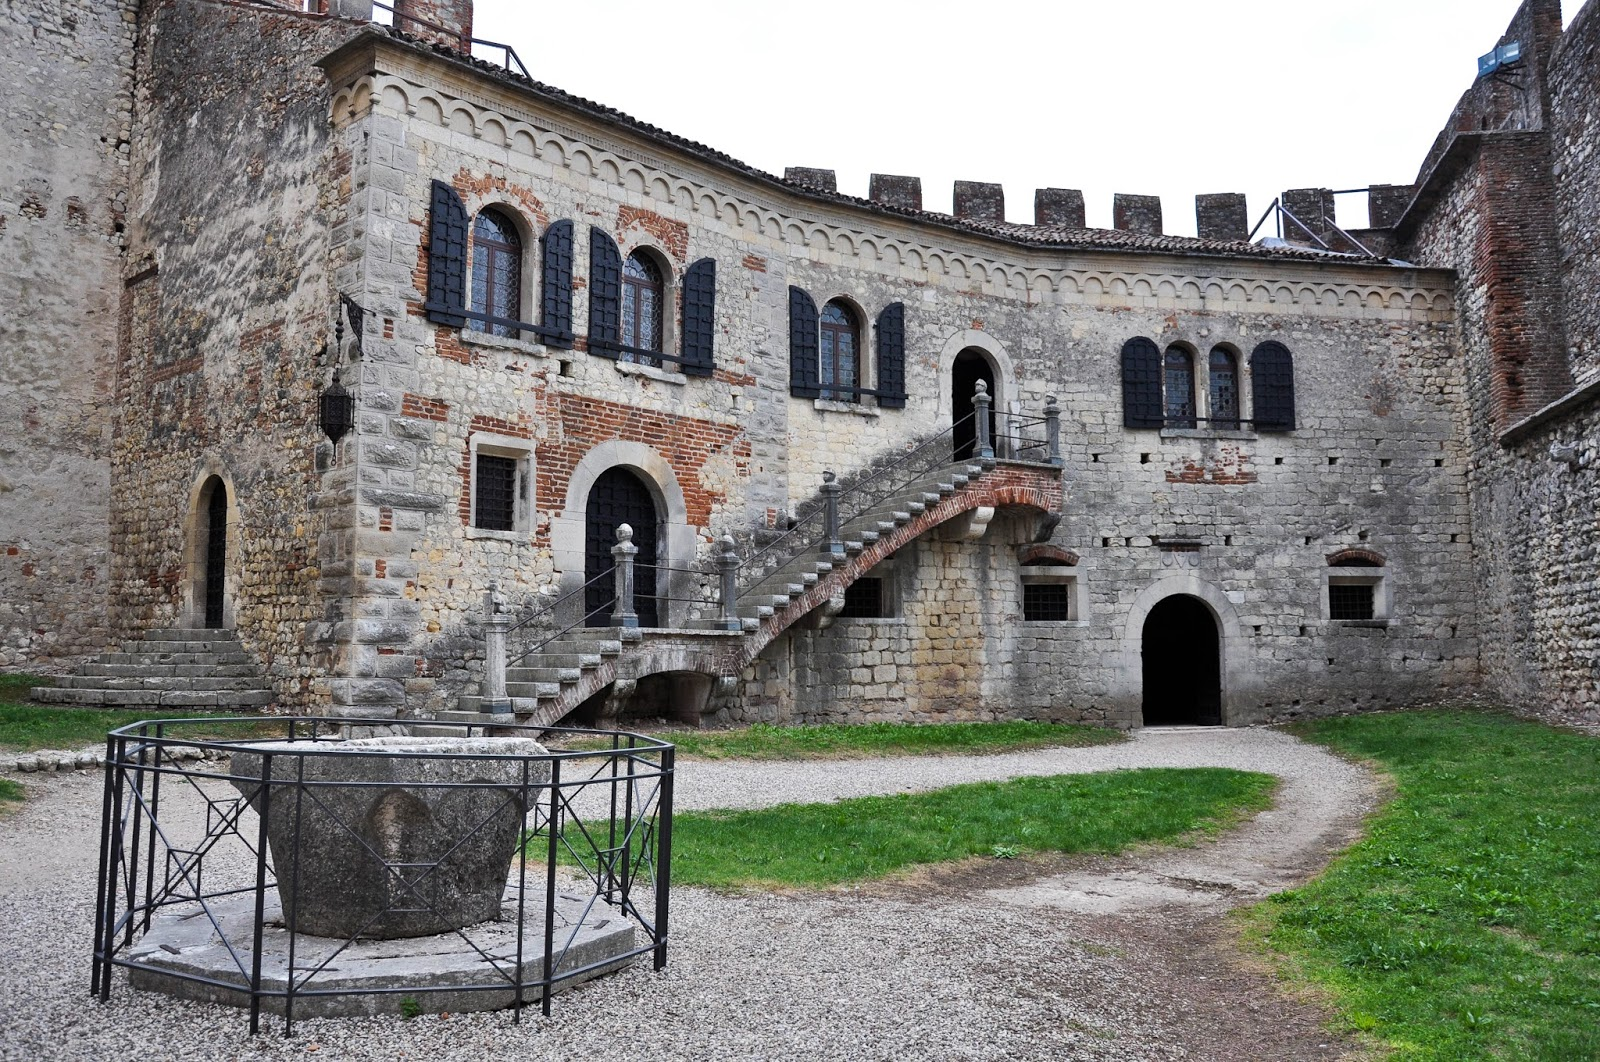 The courtyard, Soave Castle, Soave, Veneto, Italy